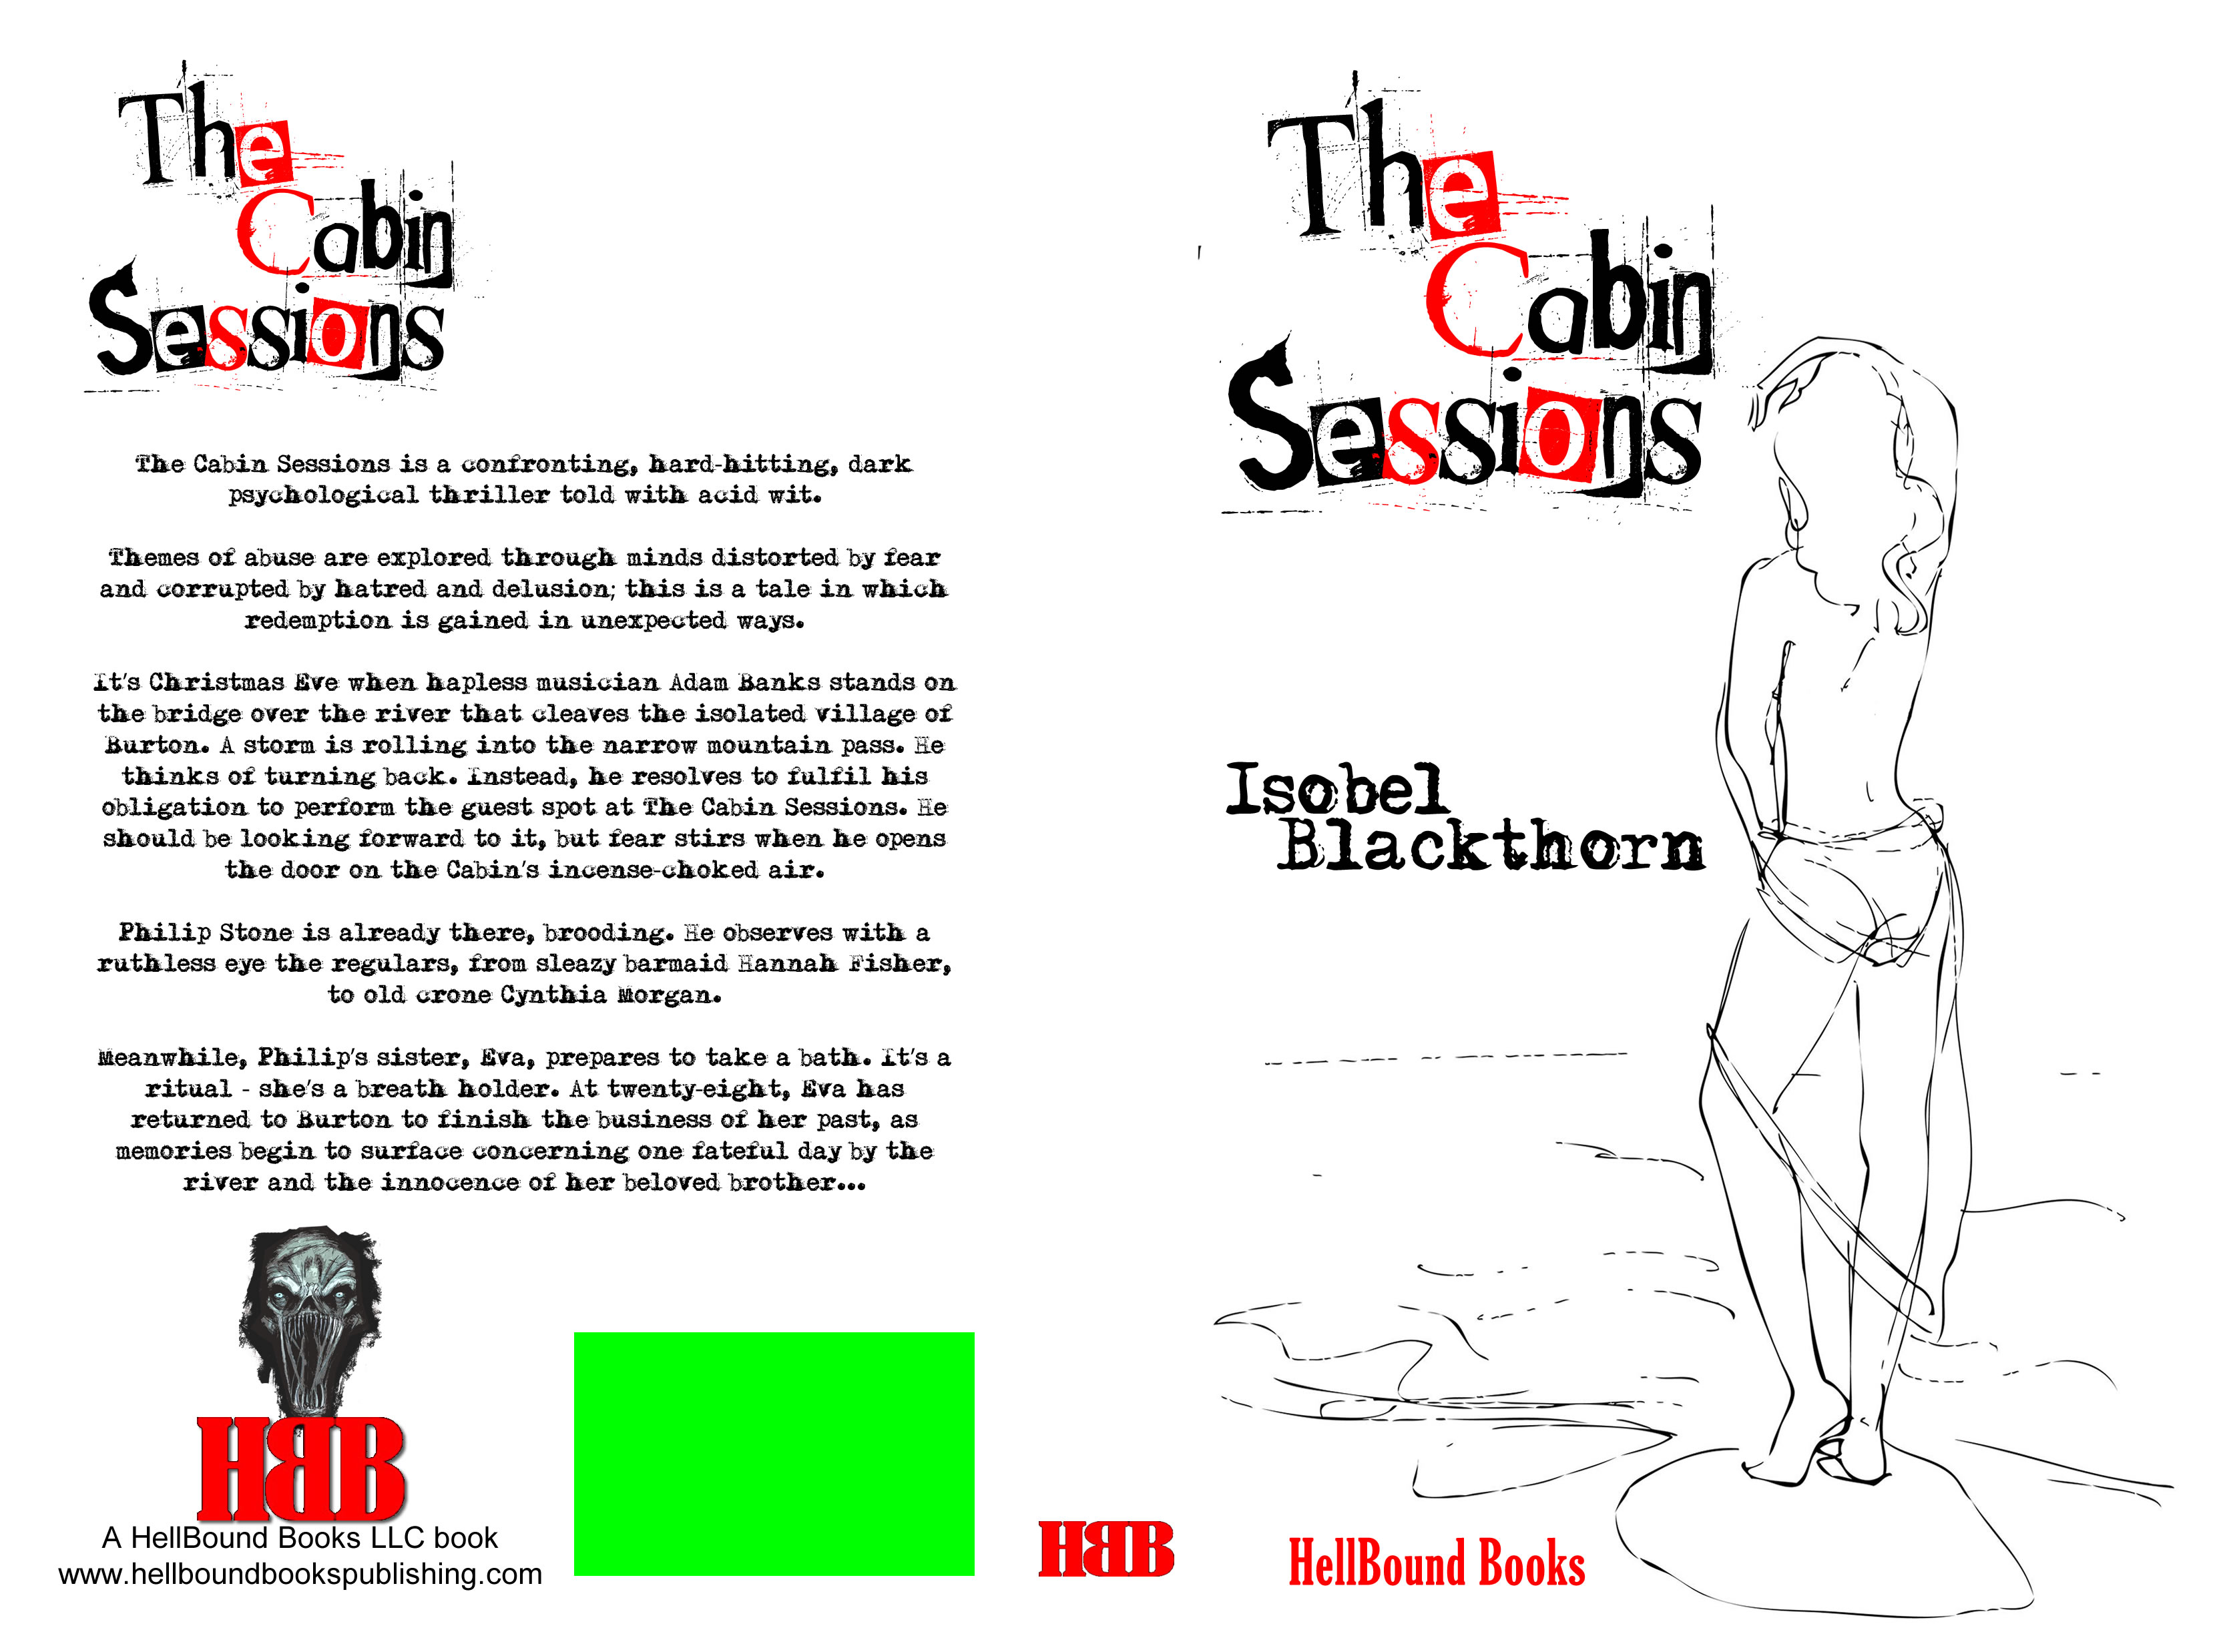 The Cabin Sessions available for preorder – Isobel blackthorn